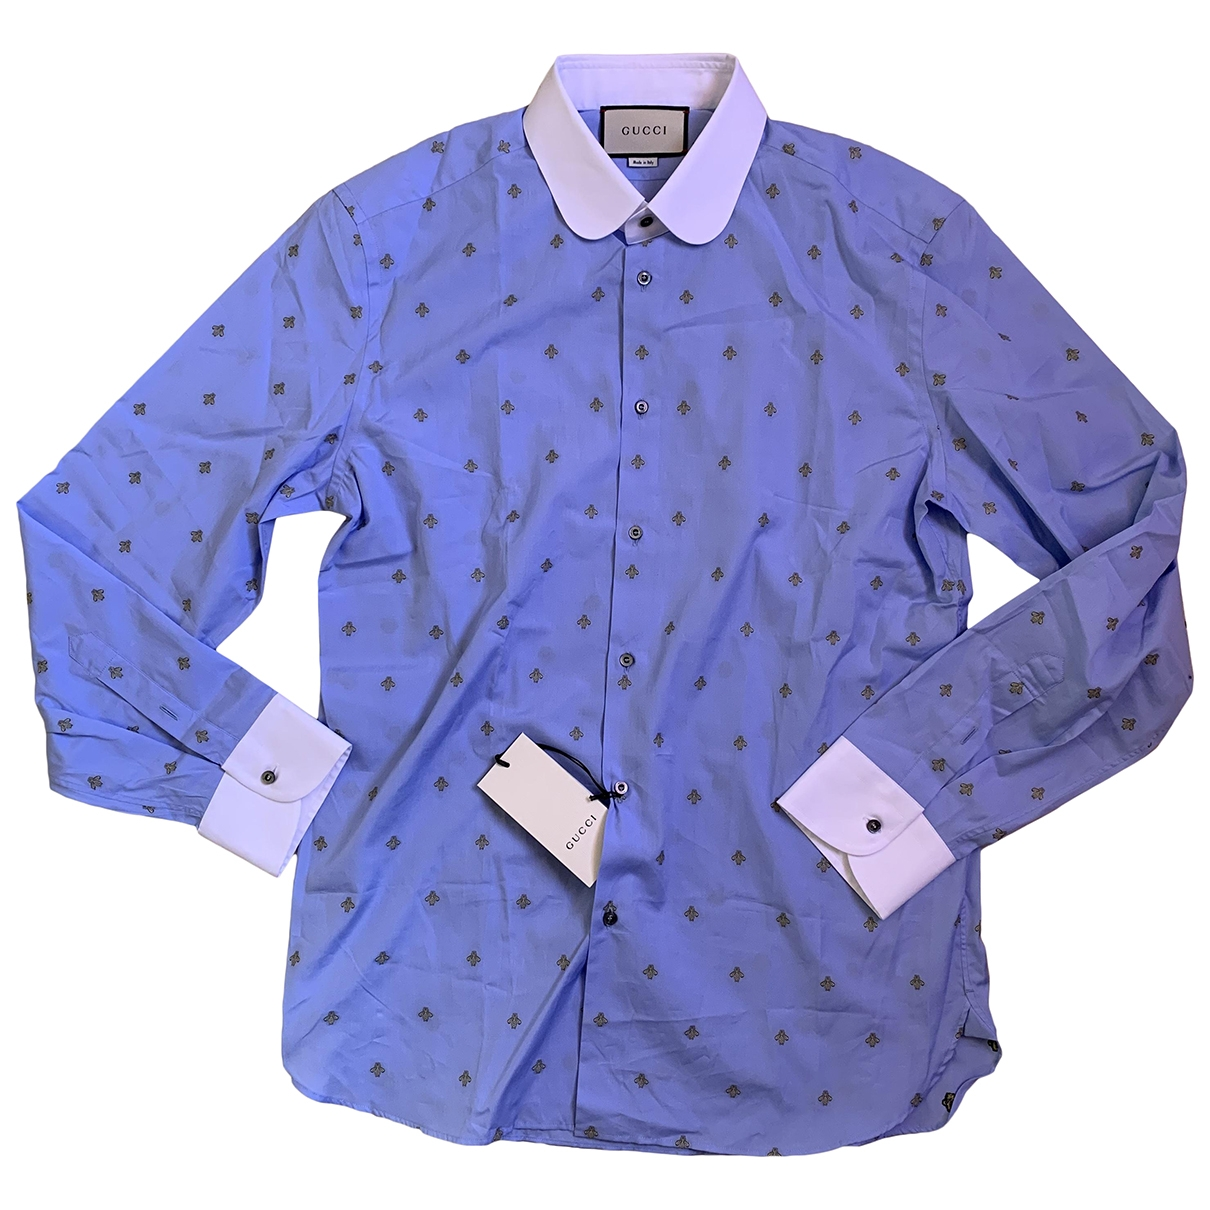 Gucci \N Blue Cotton Shirts for Men 43 EU (tour de cou / collar)